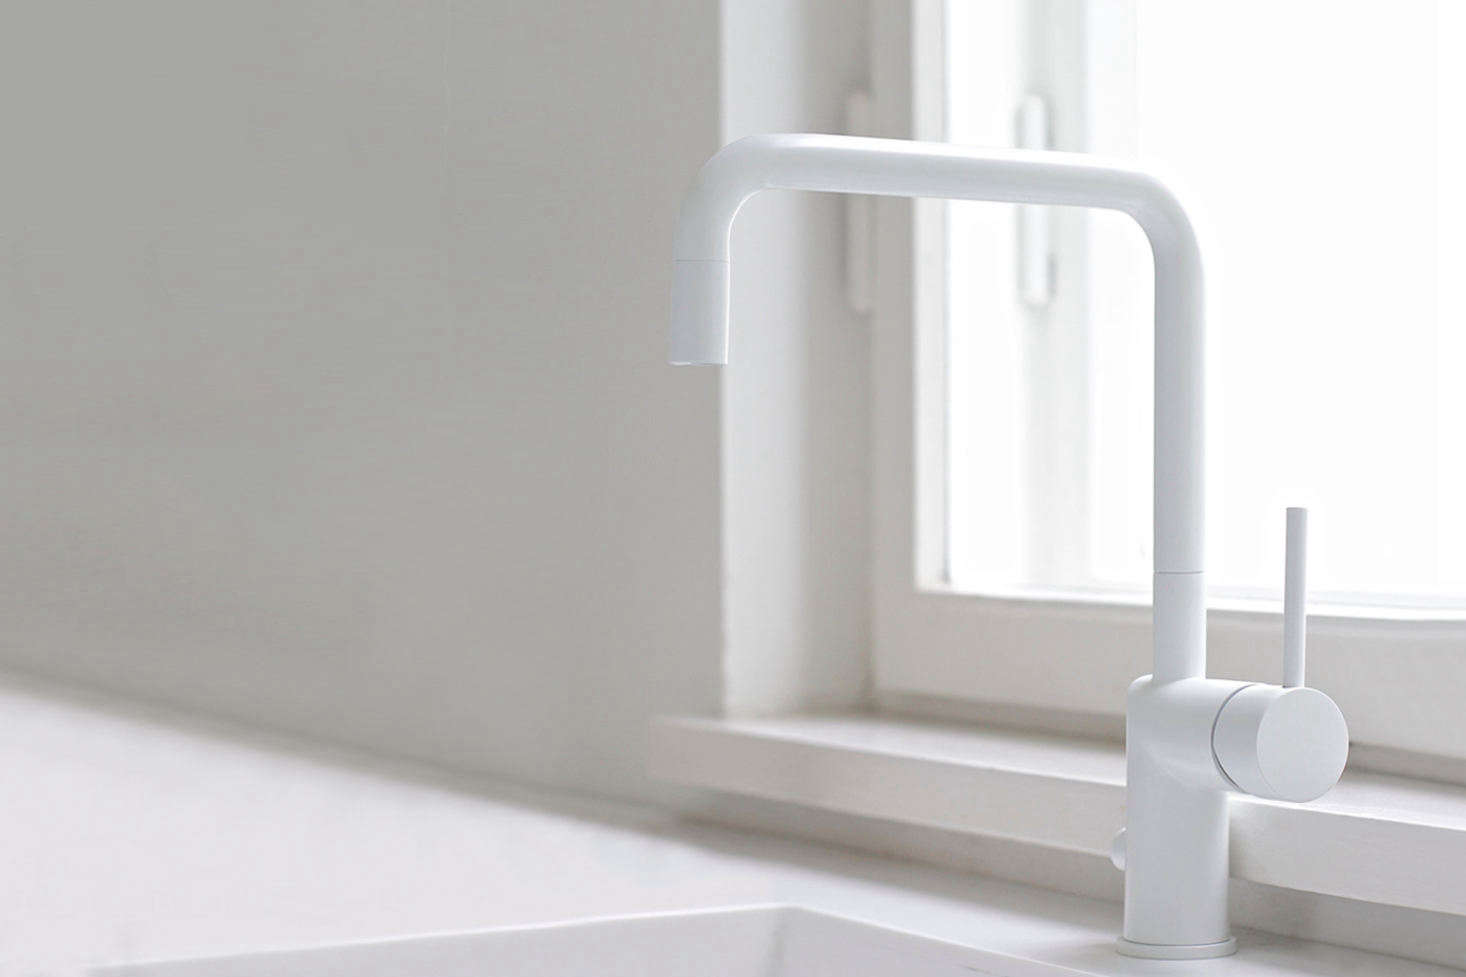 white kitchen faucet 10 easy pieces modern matte faucets remodelista vola s kv1 one handle mixer is available in and designed for the